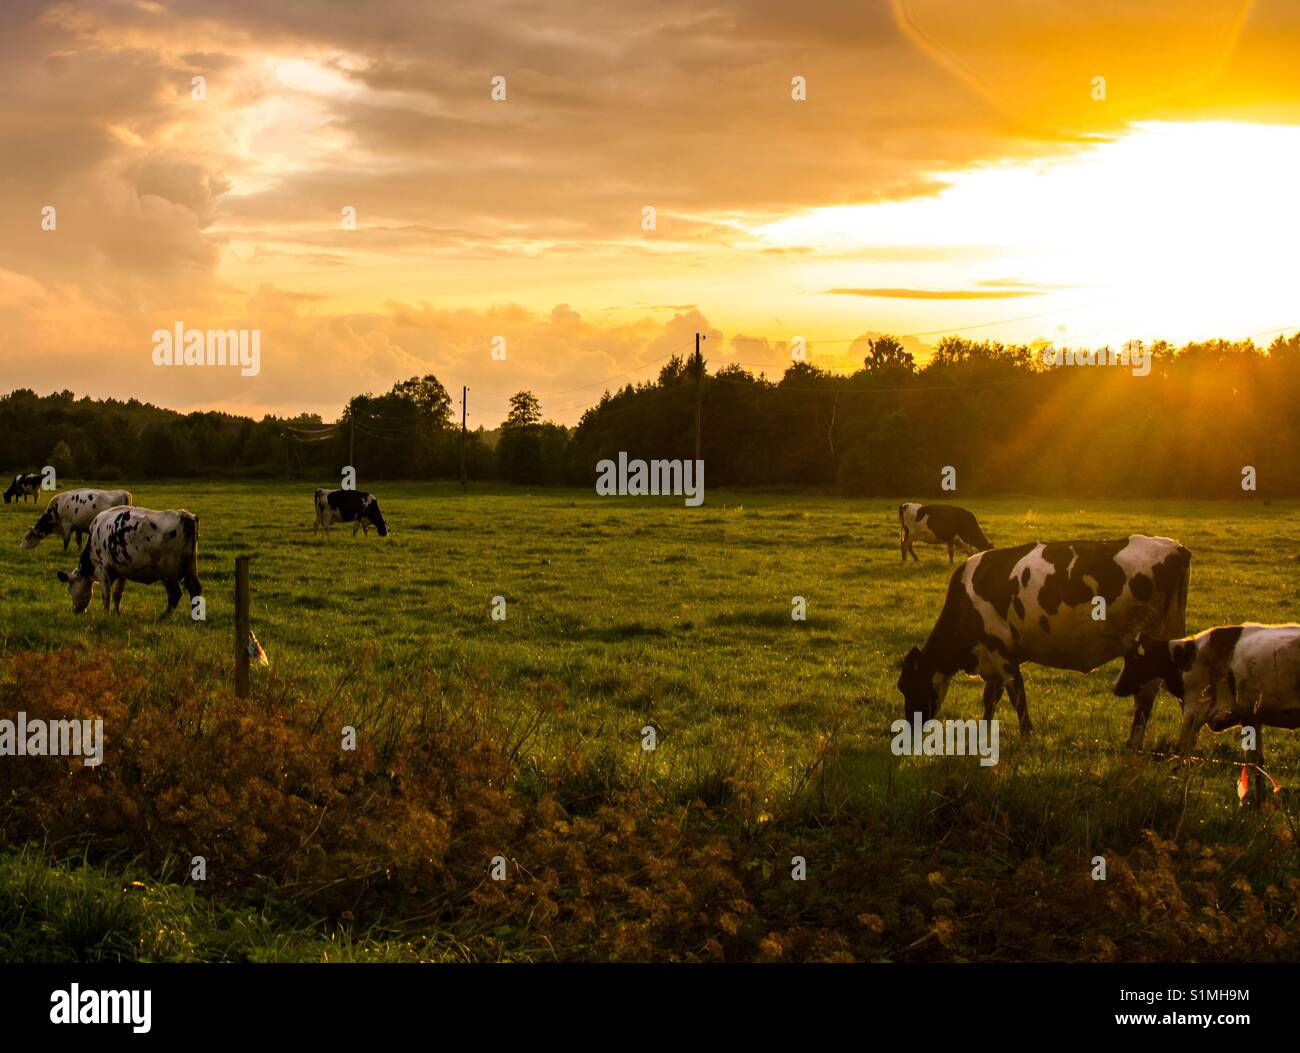 'Till the cows come home at sunset. - Stock Image